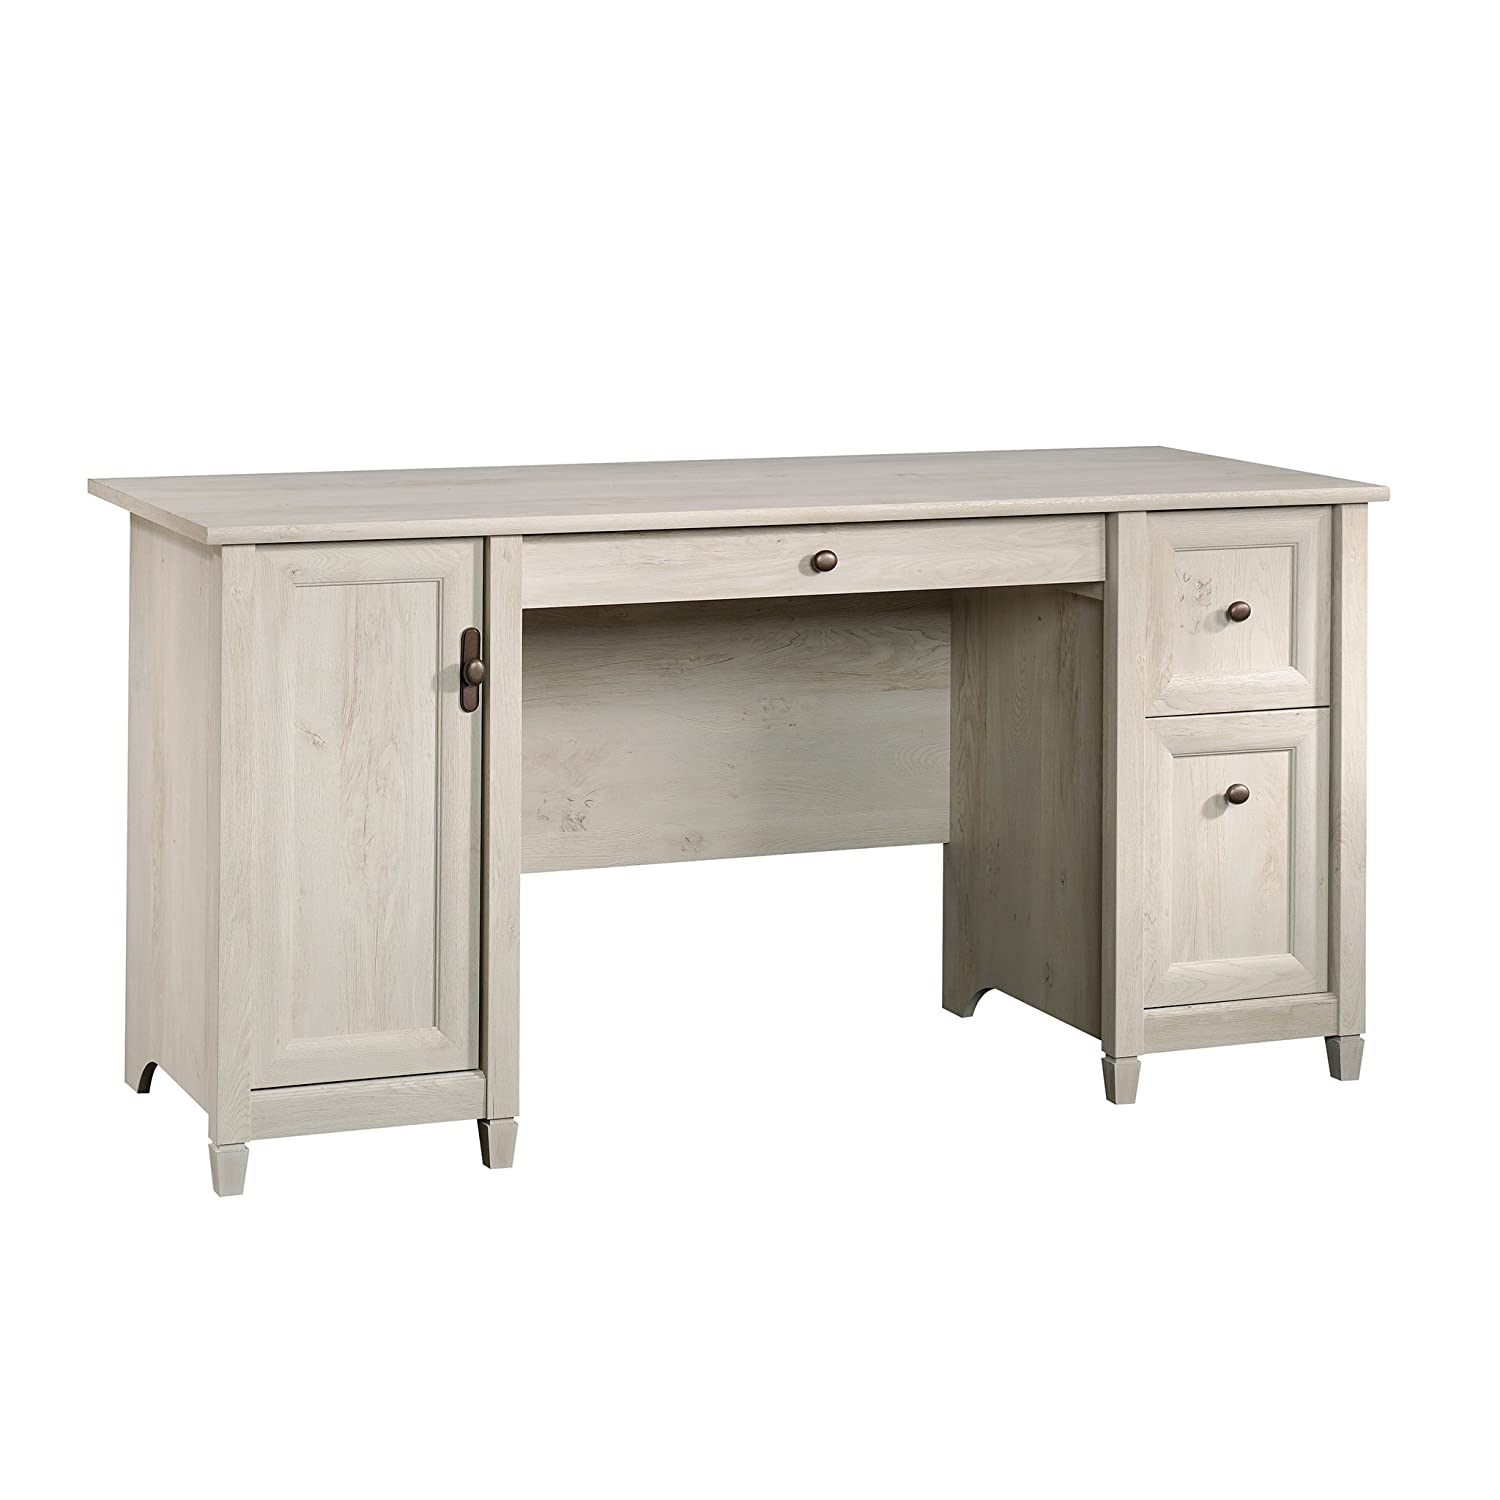 Sauder Edge Water Computer Desk, Chalked Chestnut finish